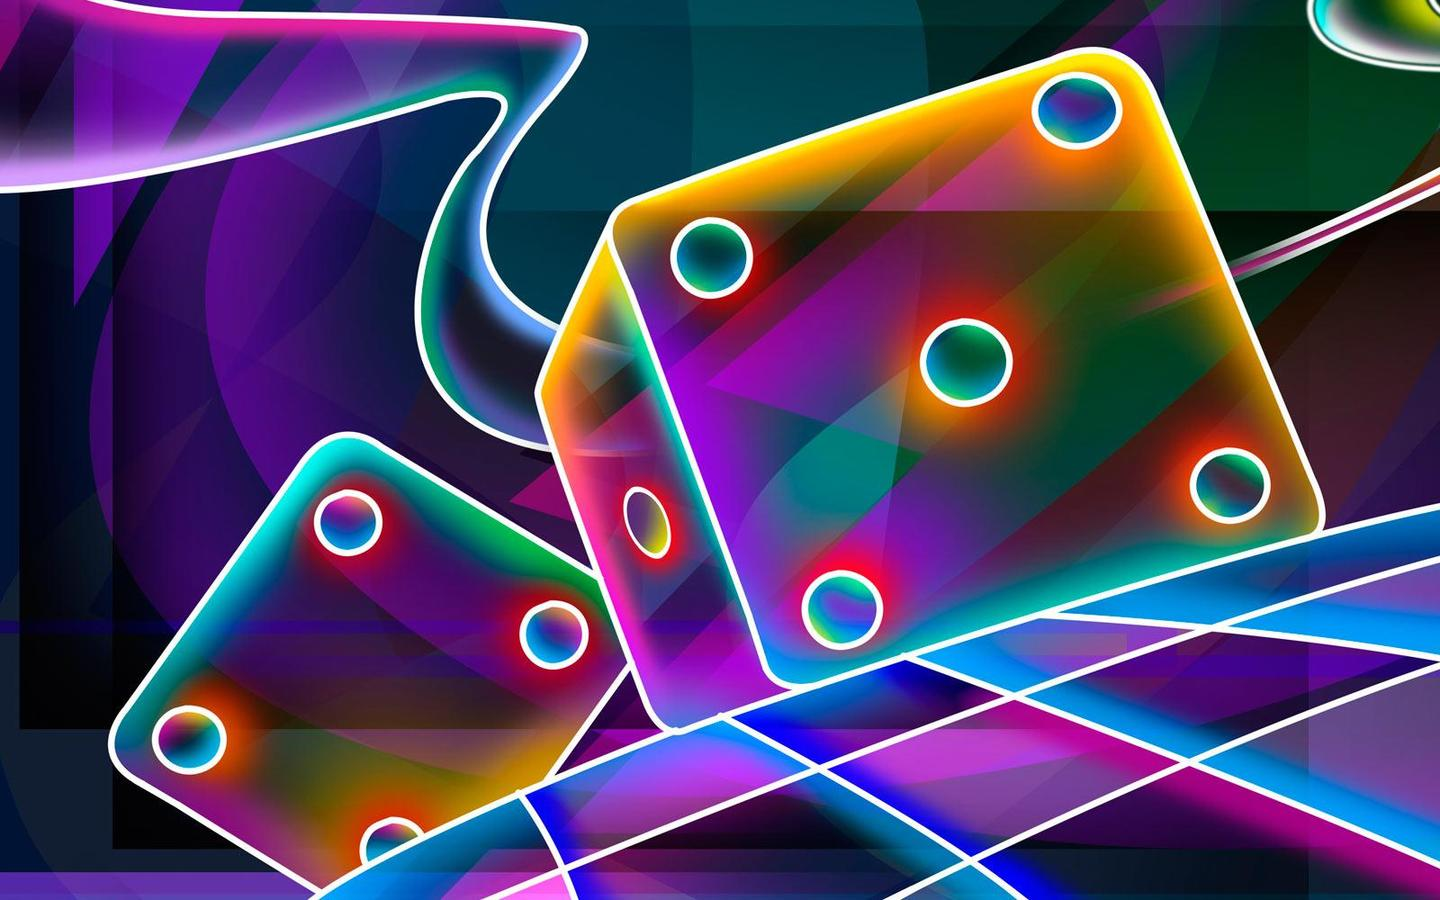 Cool 3D Neon Wallpapers